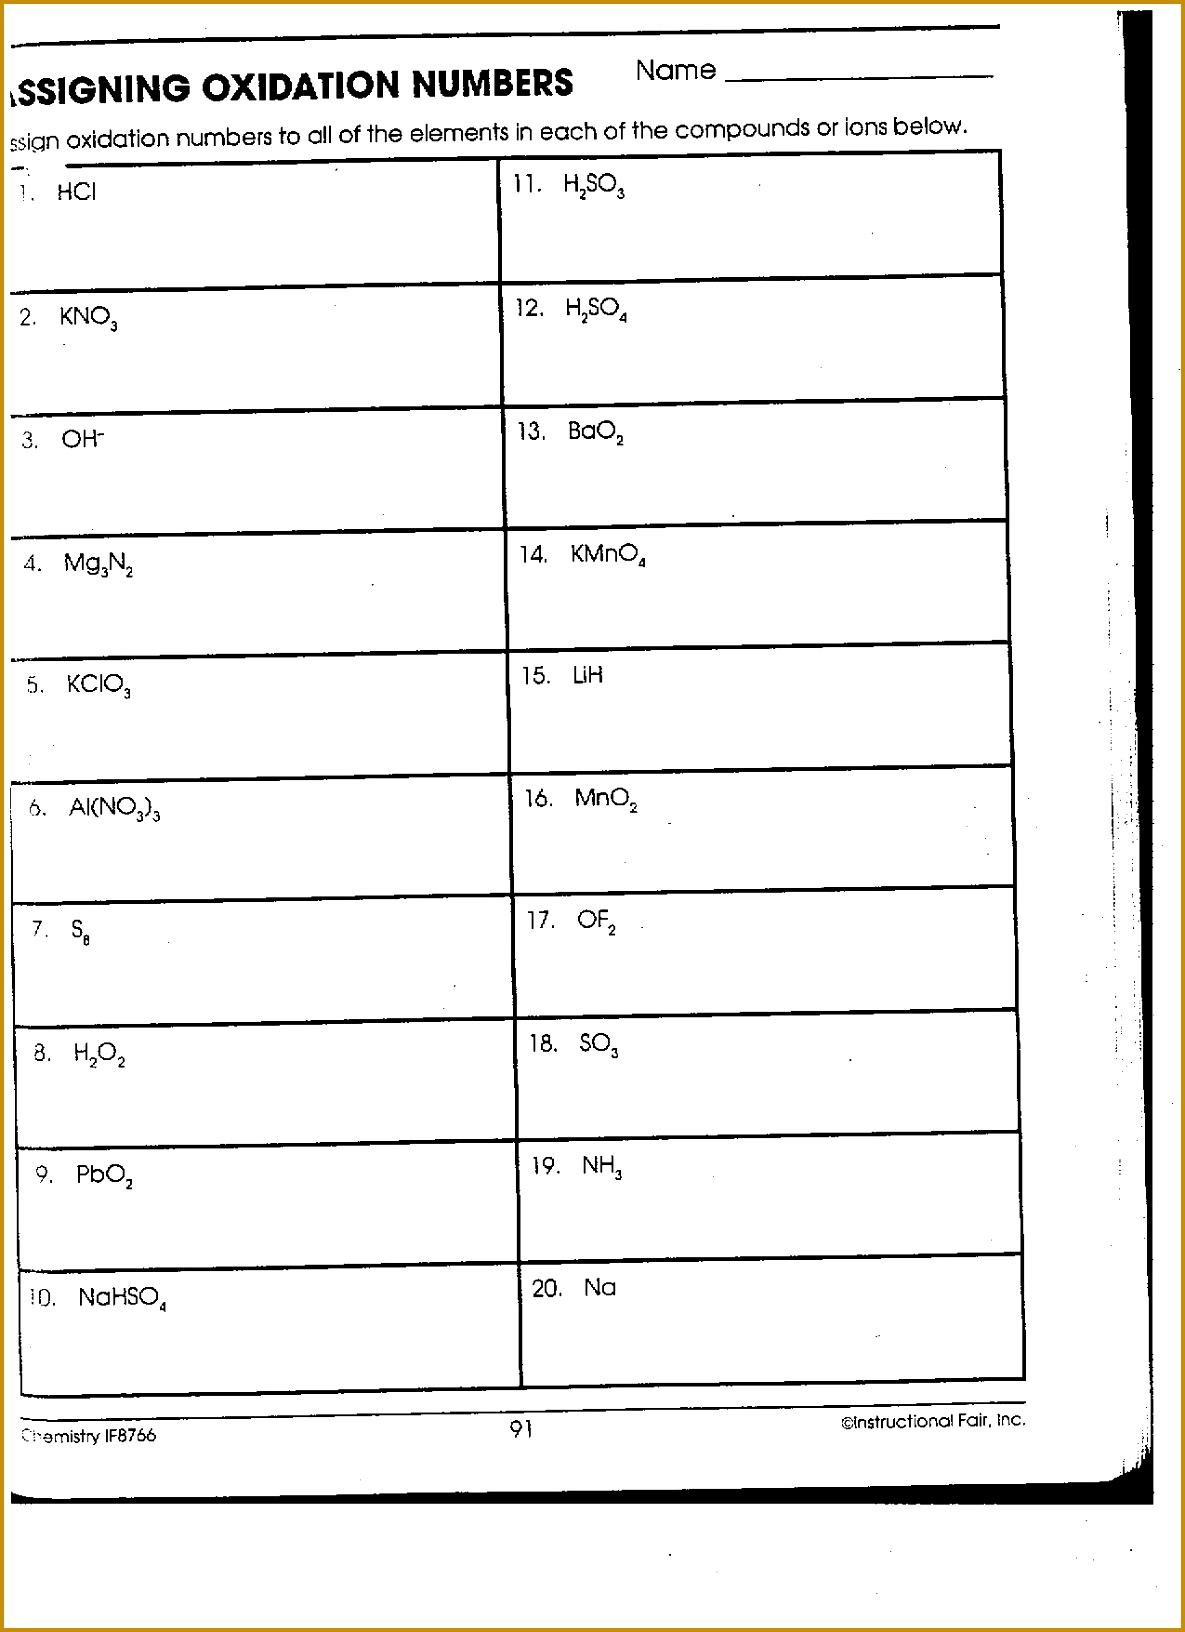 Worksheet Oxidation Numbers Answer Key